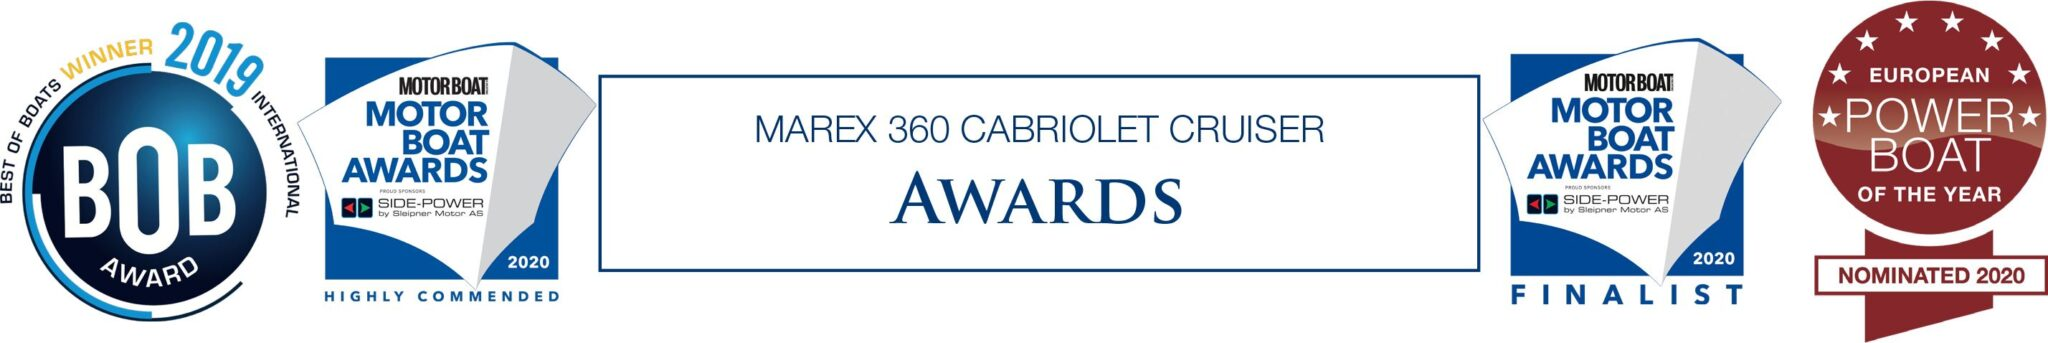 marex-360-cabriolet-cruiser-awards